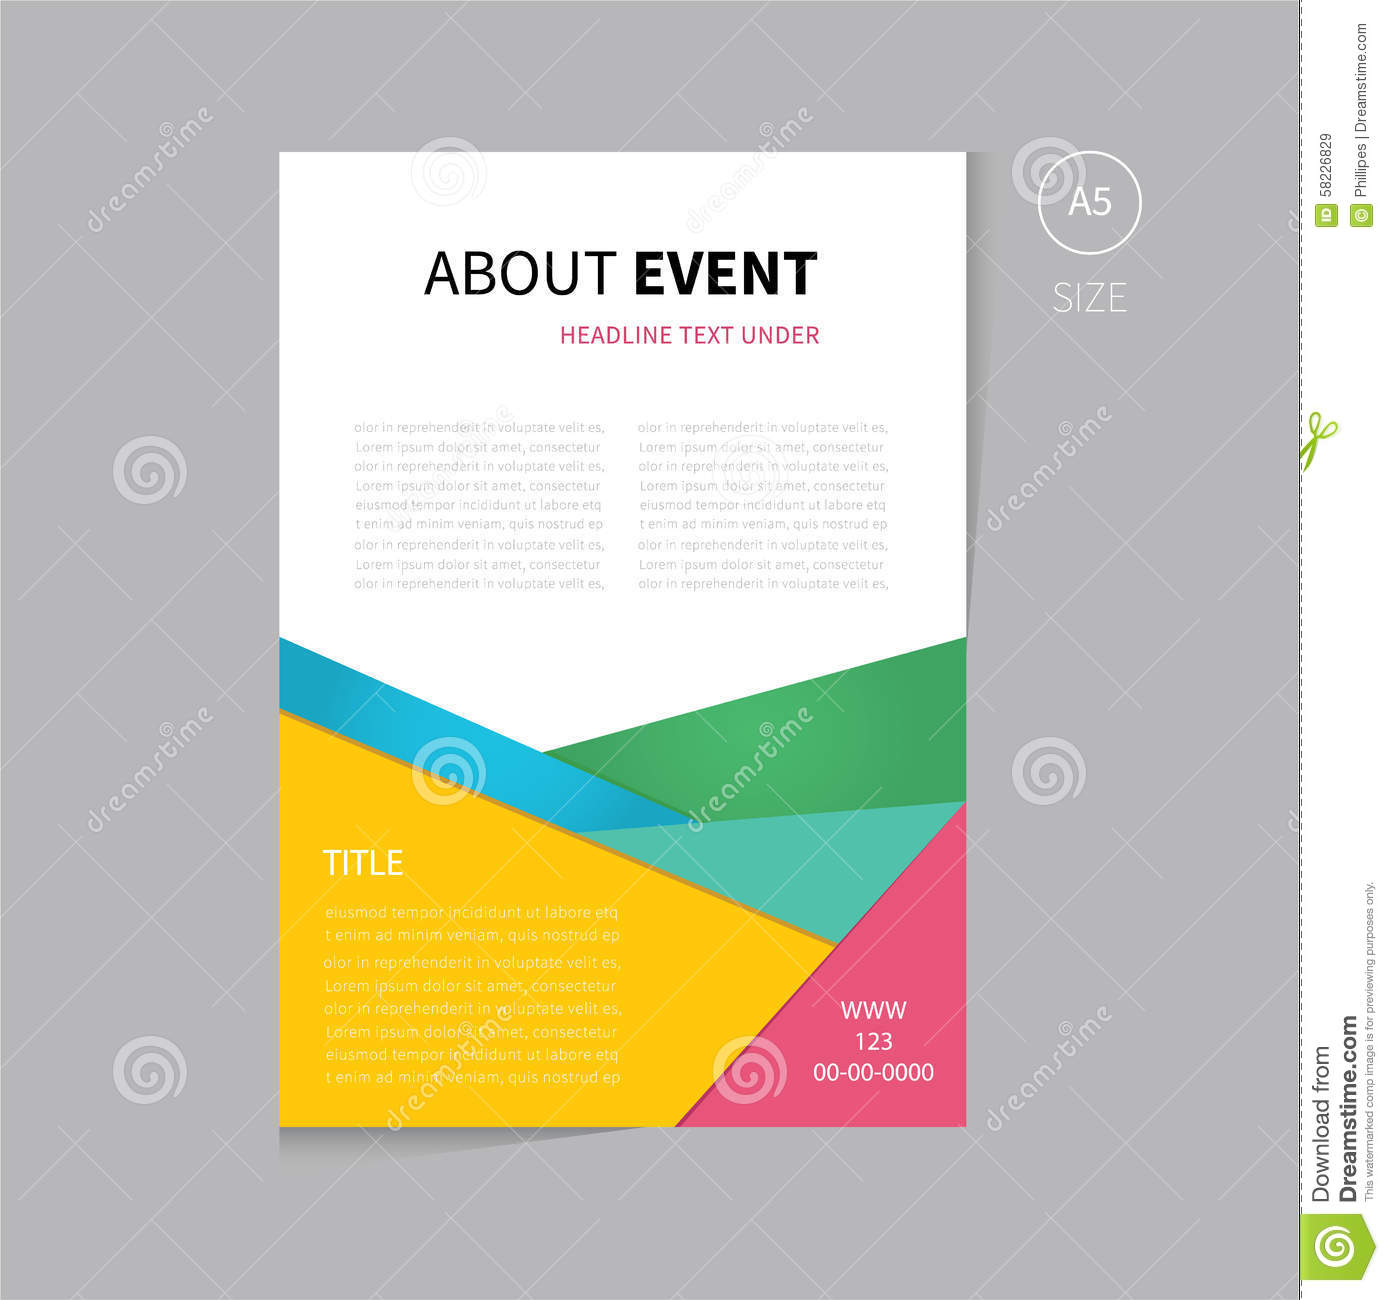 a5 brochure template - vector brochure flyer template design a5 size stock vector